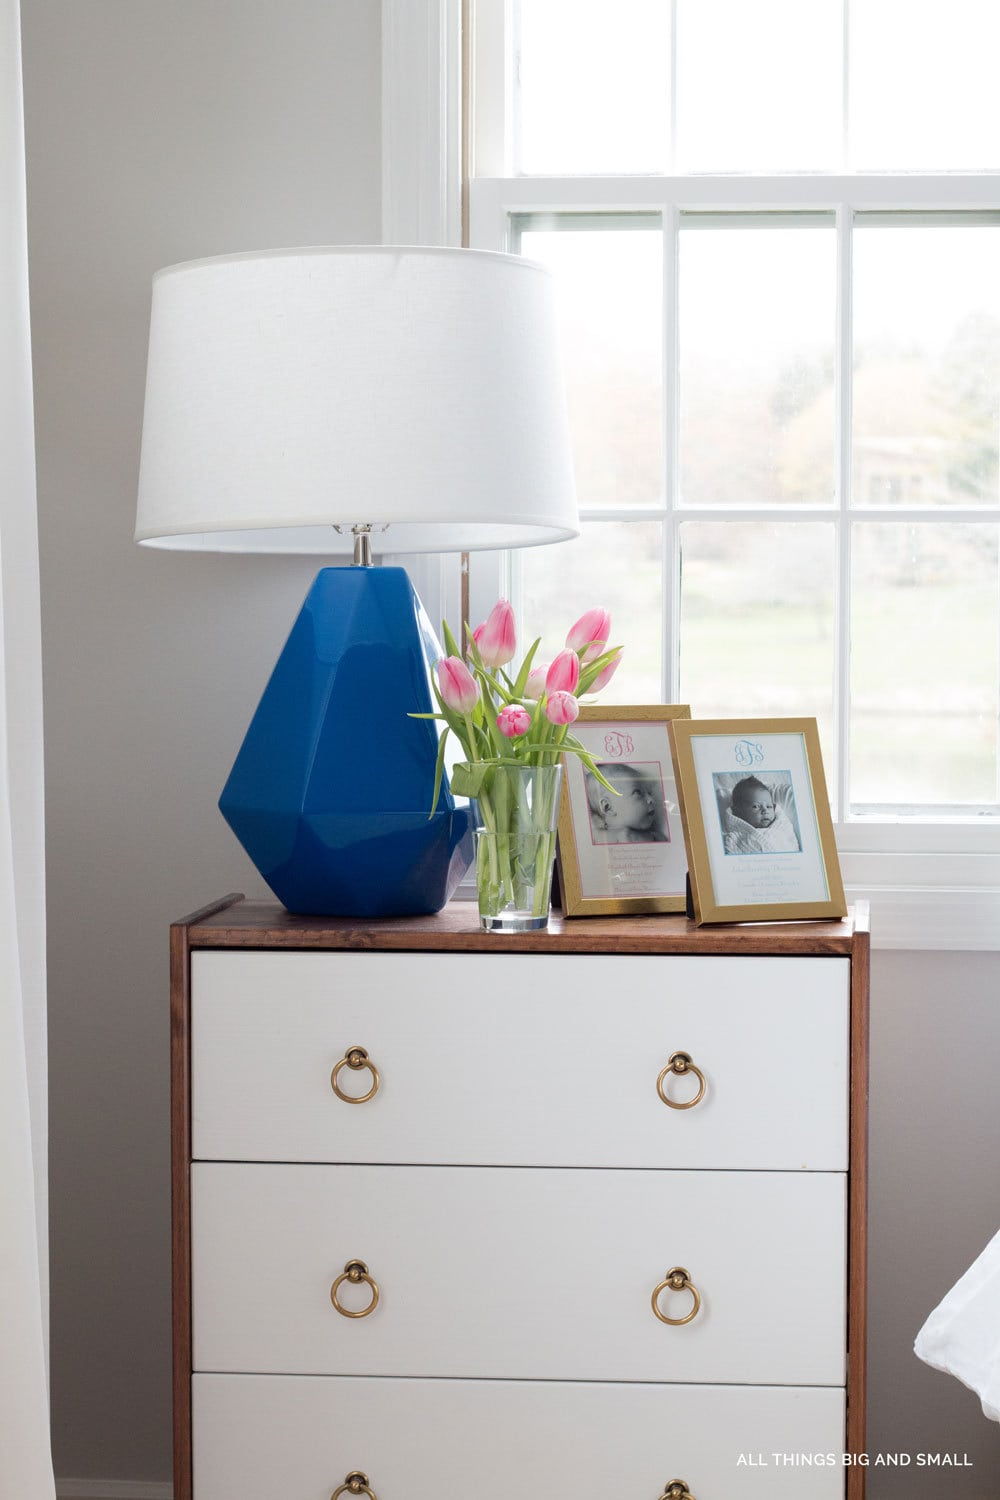 bedside touch lamp hacks that takes 5 minutes! ALL THINGS BIG AND SMALL